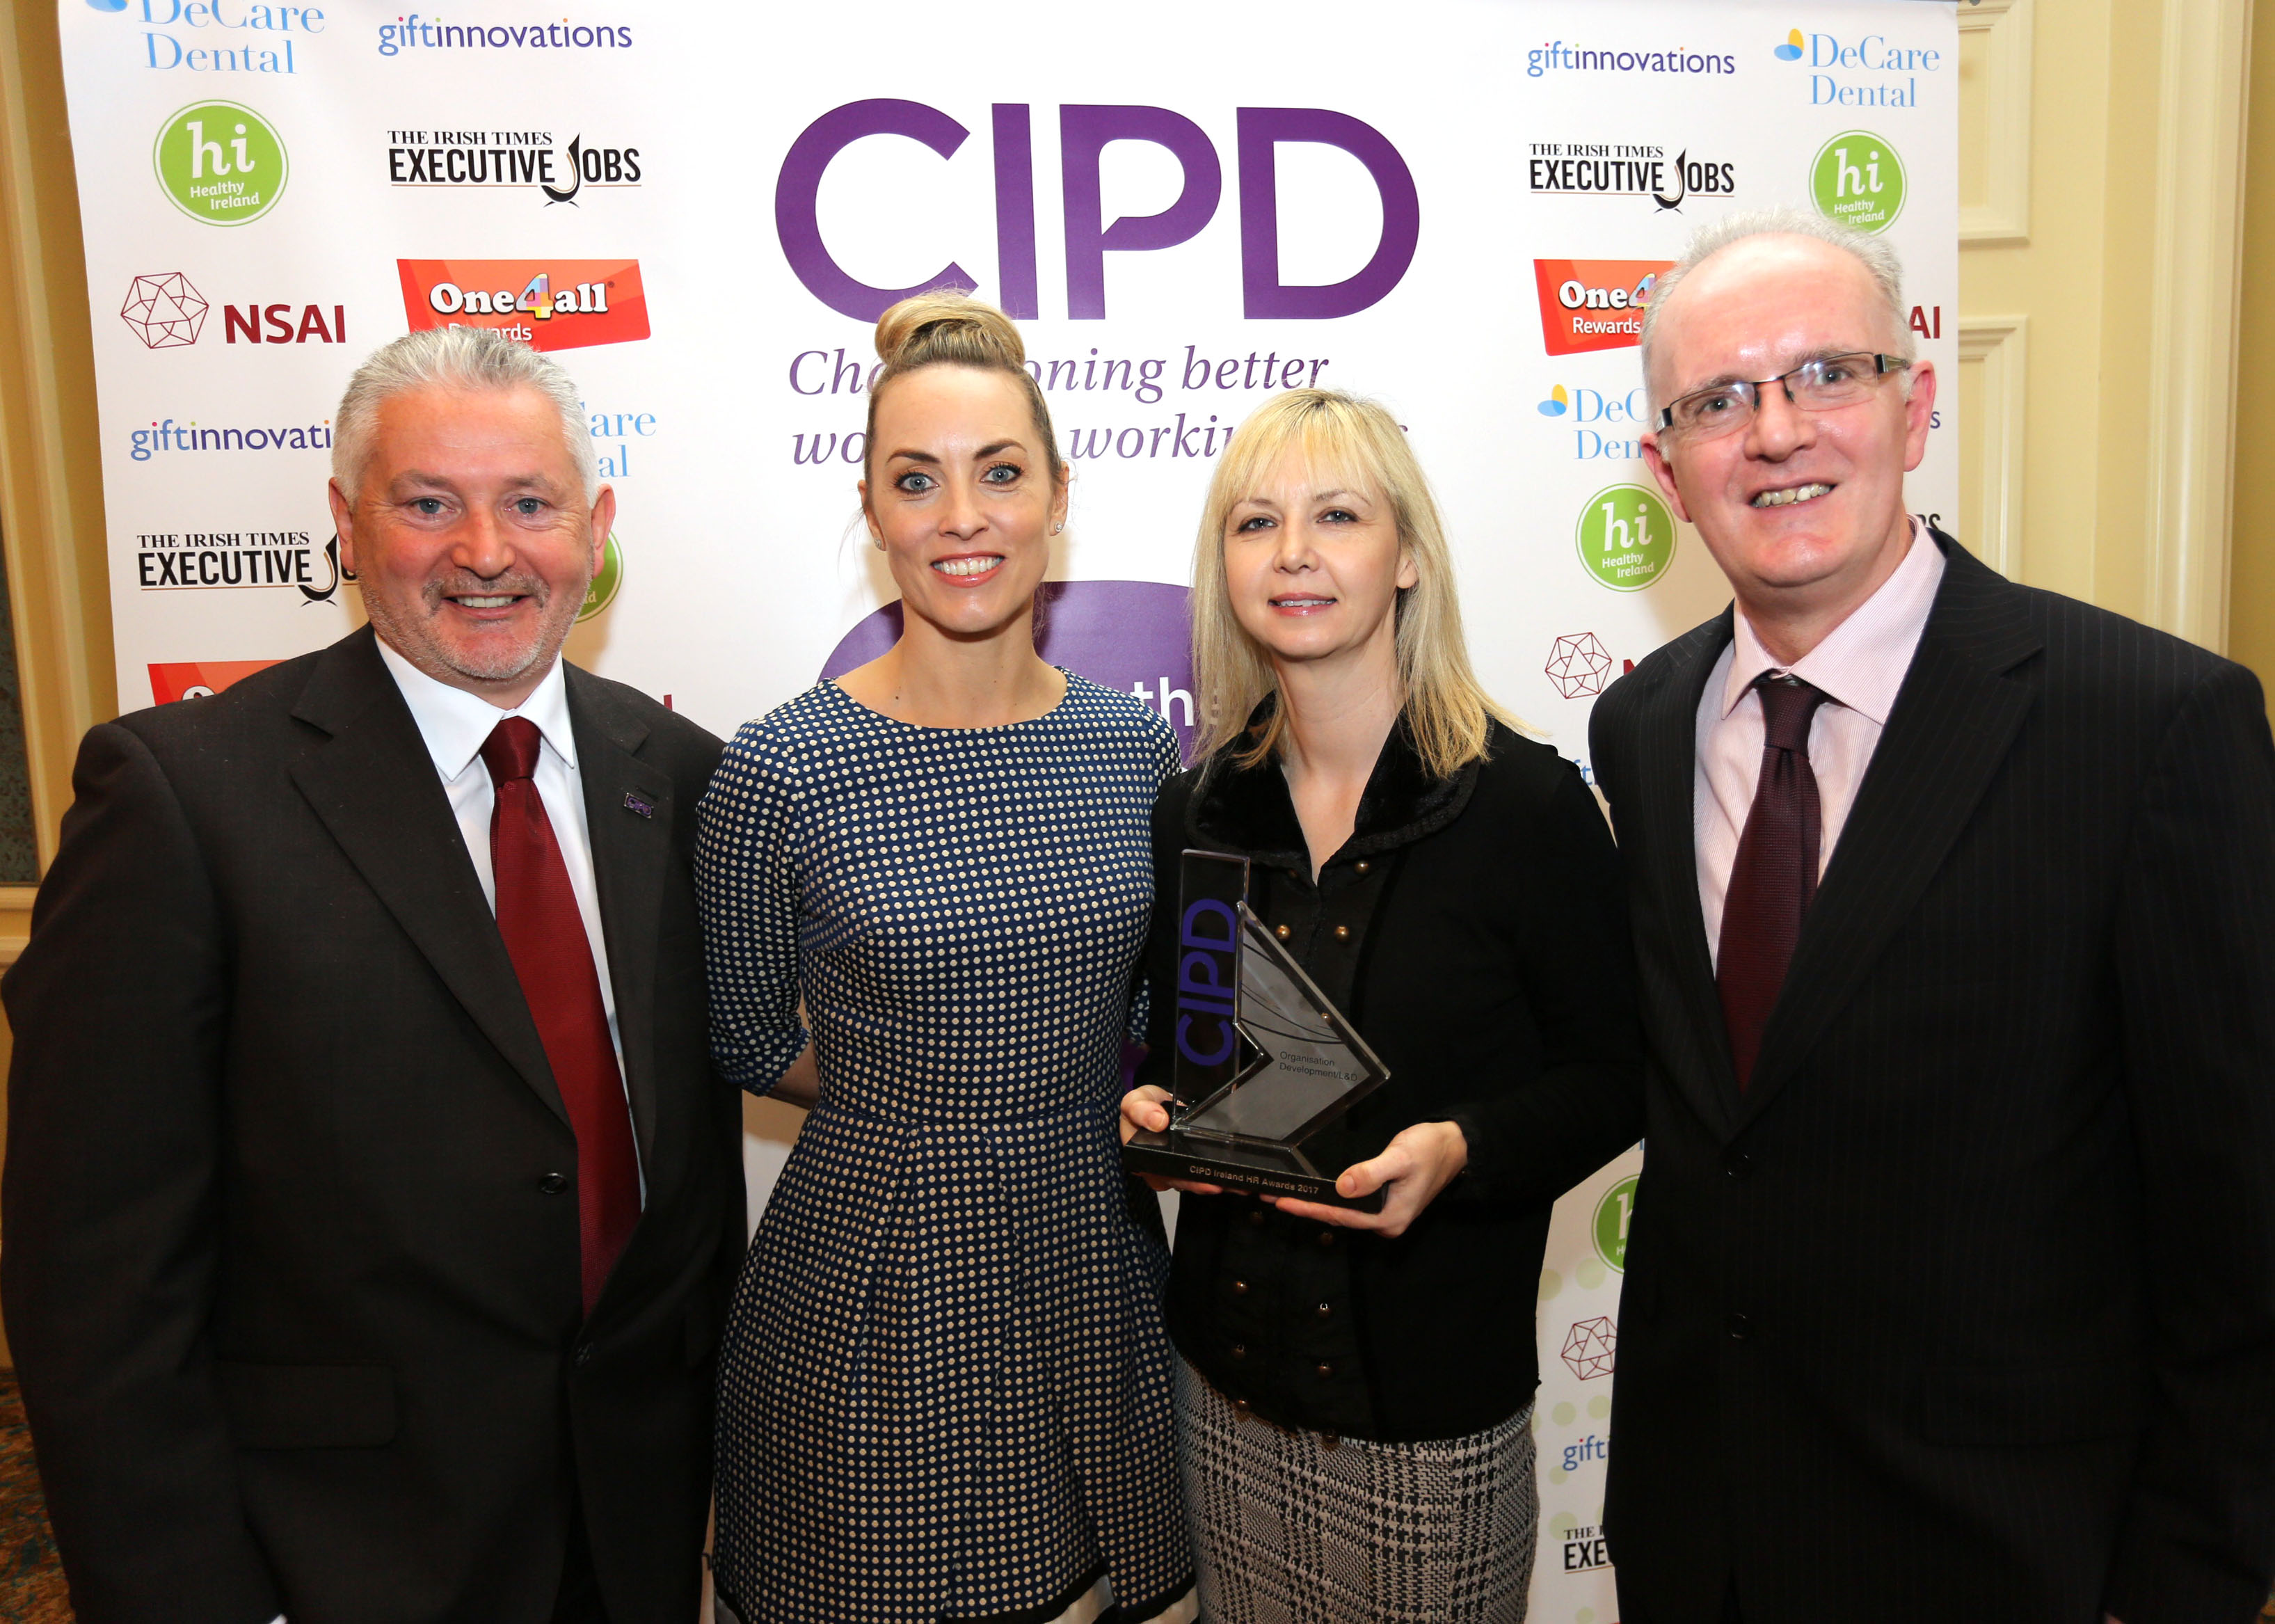 WALK were delighted to receive the 2017 CIPD Award for Organisation Development/L&D